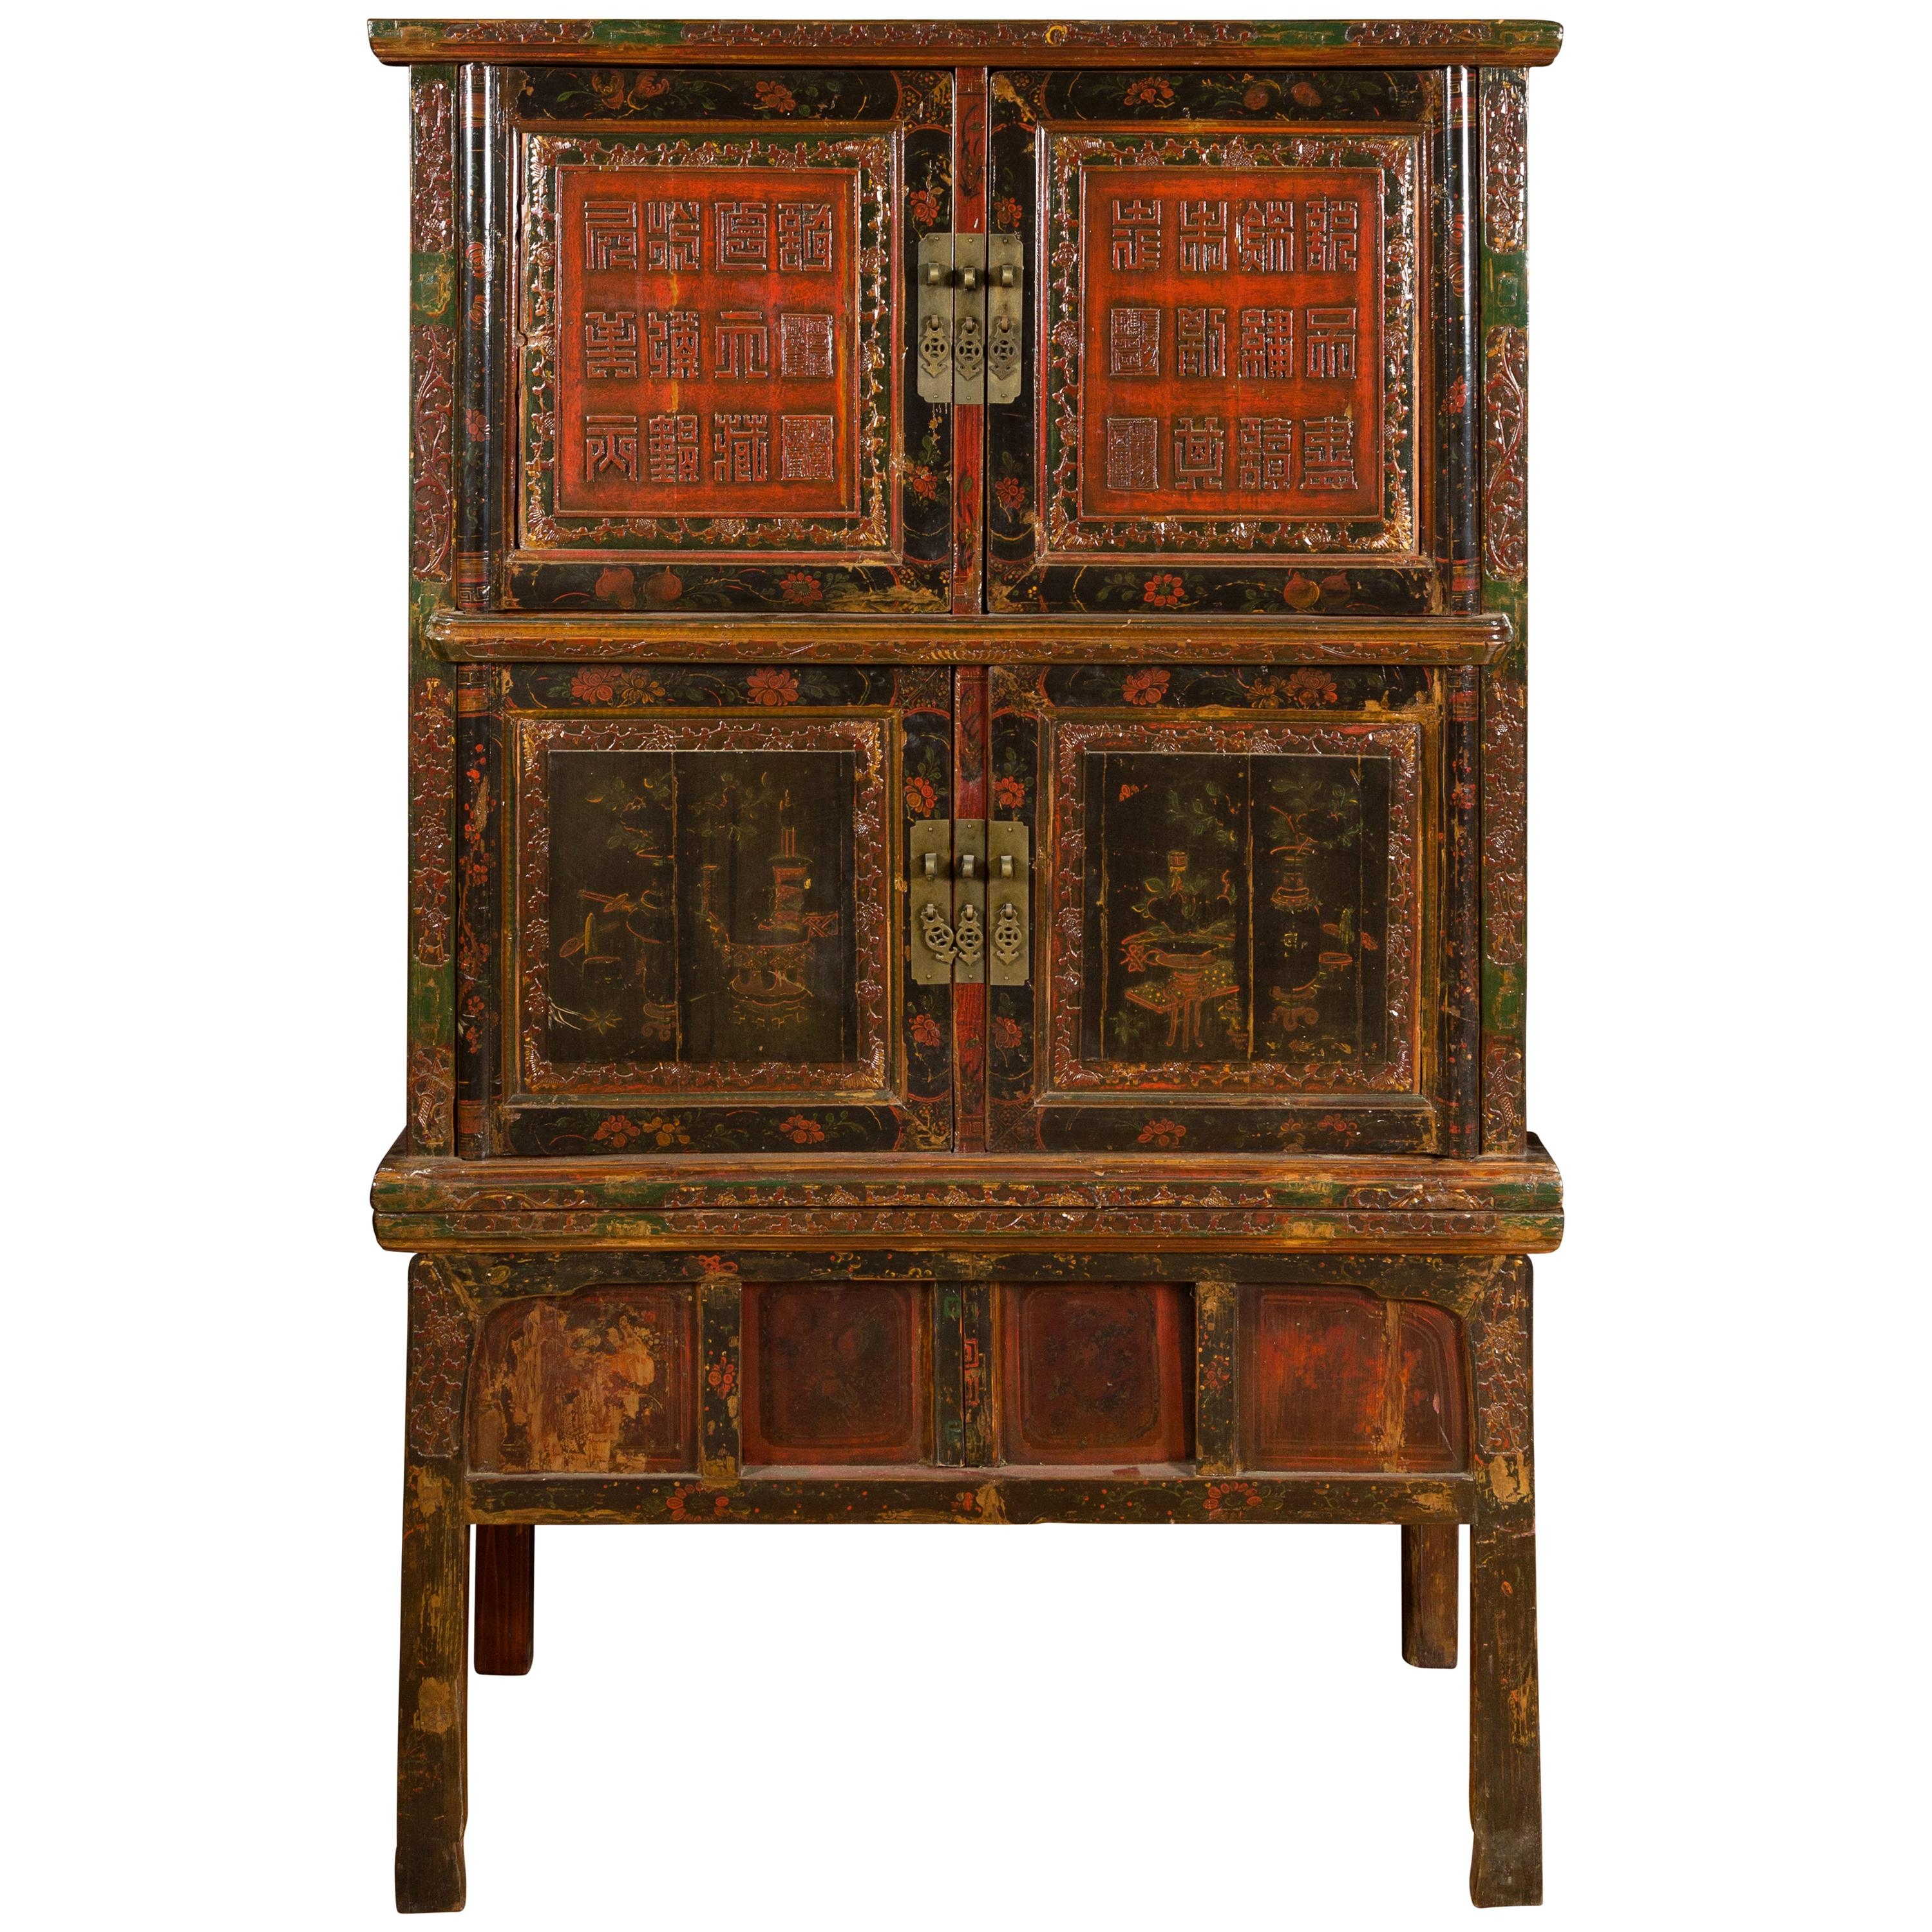 Chinese Qing Dynasty 19th Century Lacquered Cabinet with Calligraphy Motifs